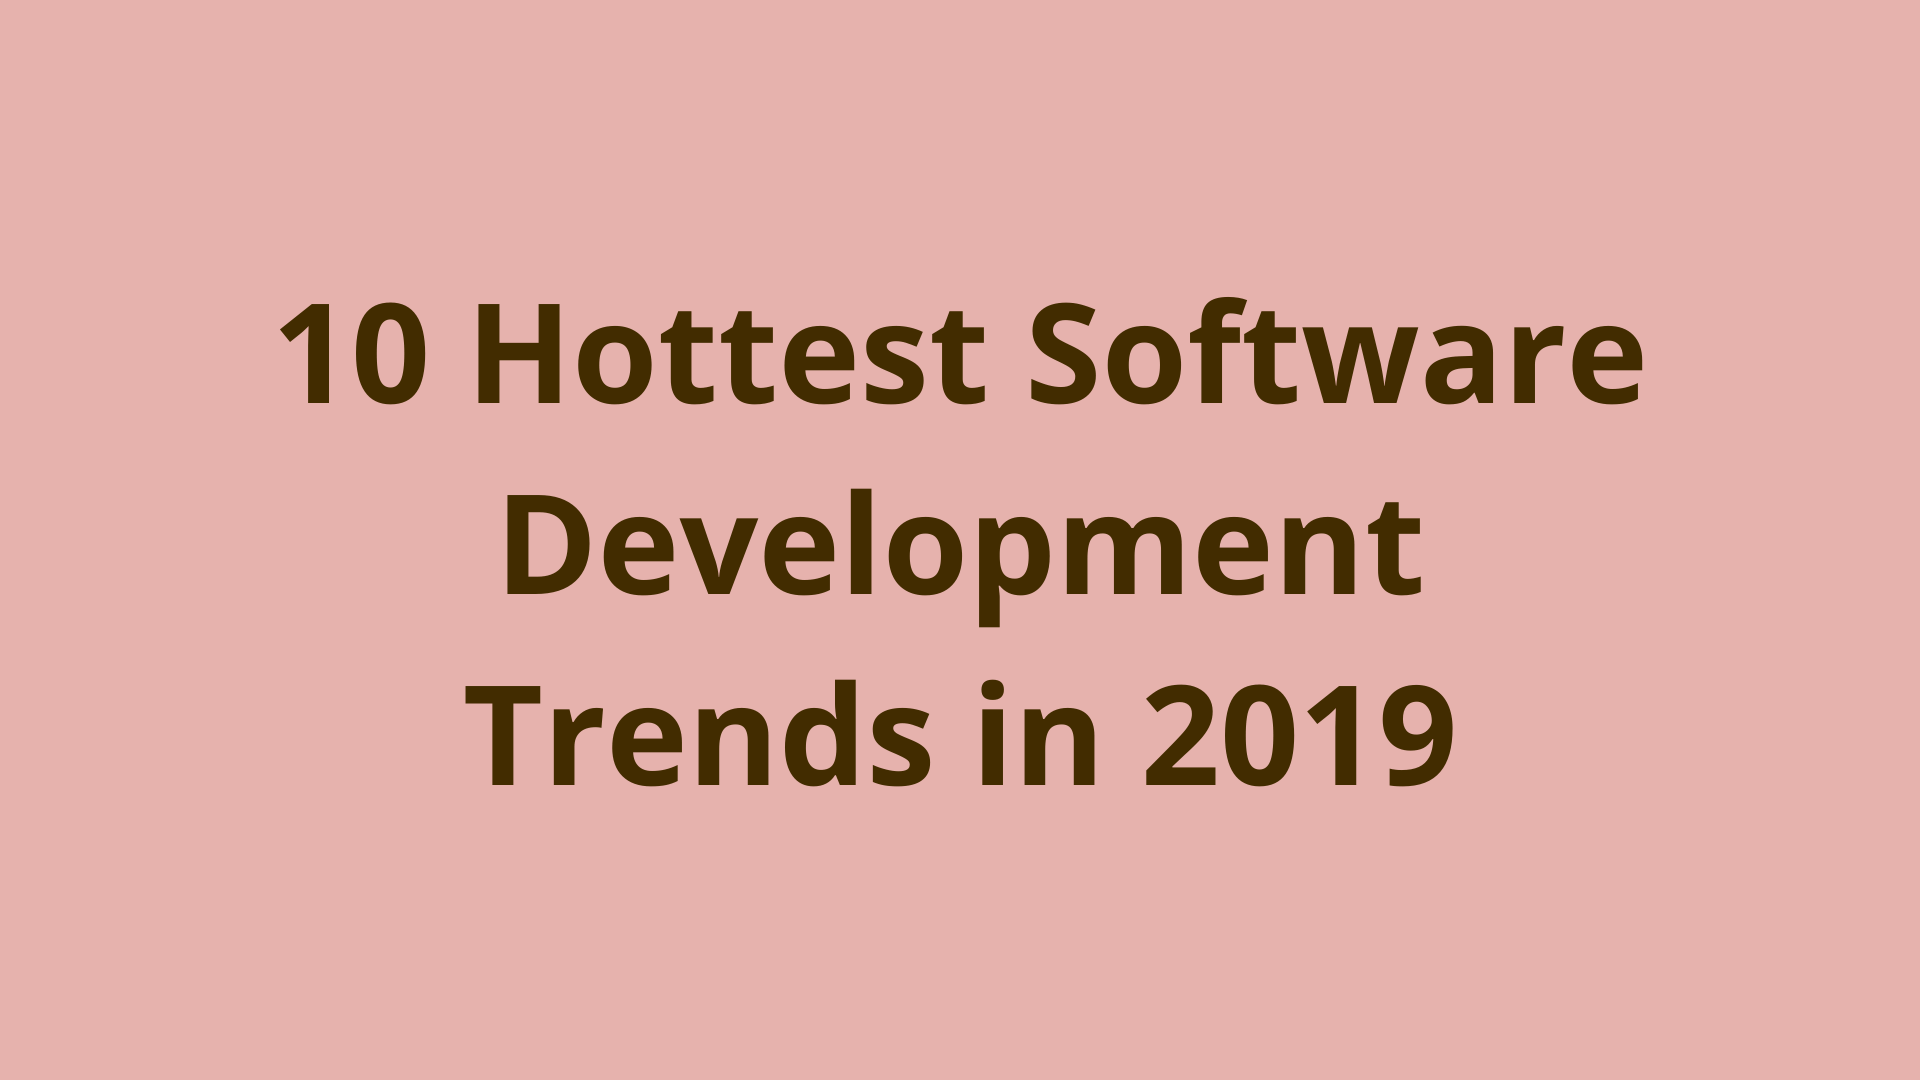 Image of 10 hottest software development trends in 2019